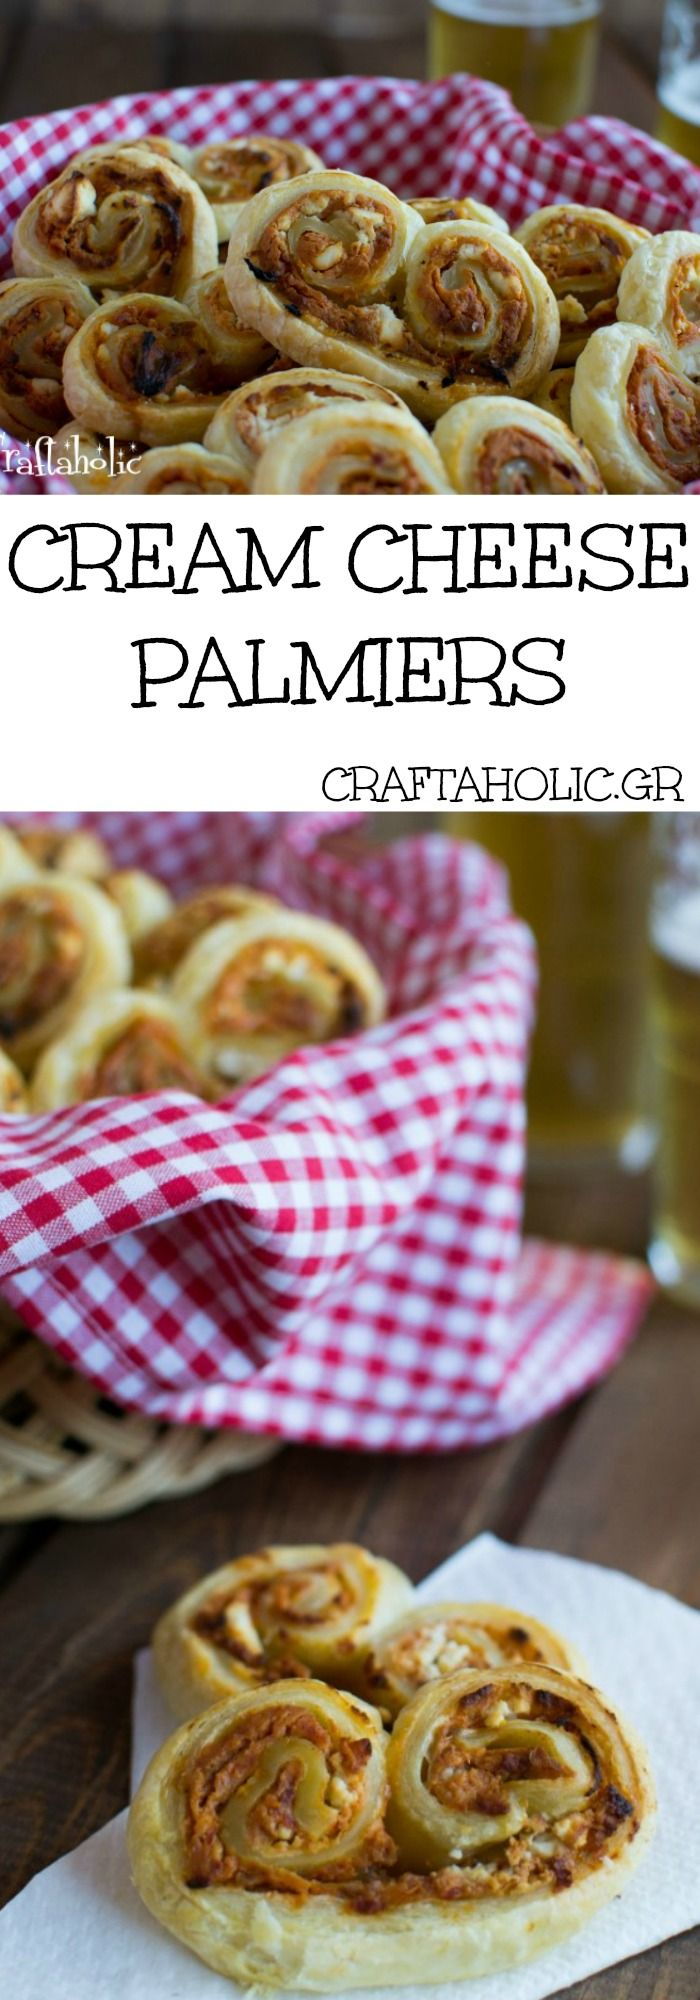 The easiest snack you can ever make are these cream cheese and sun dried tomato palmiers. They are yummy and perfect with a cold beer!